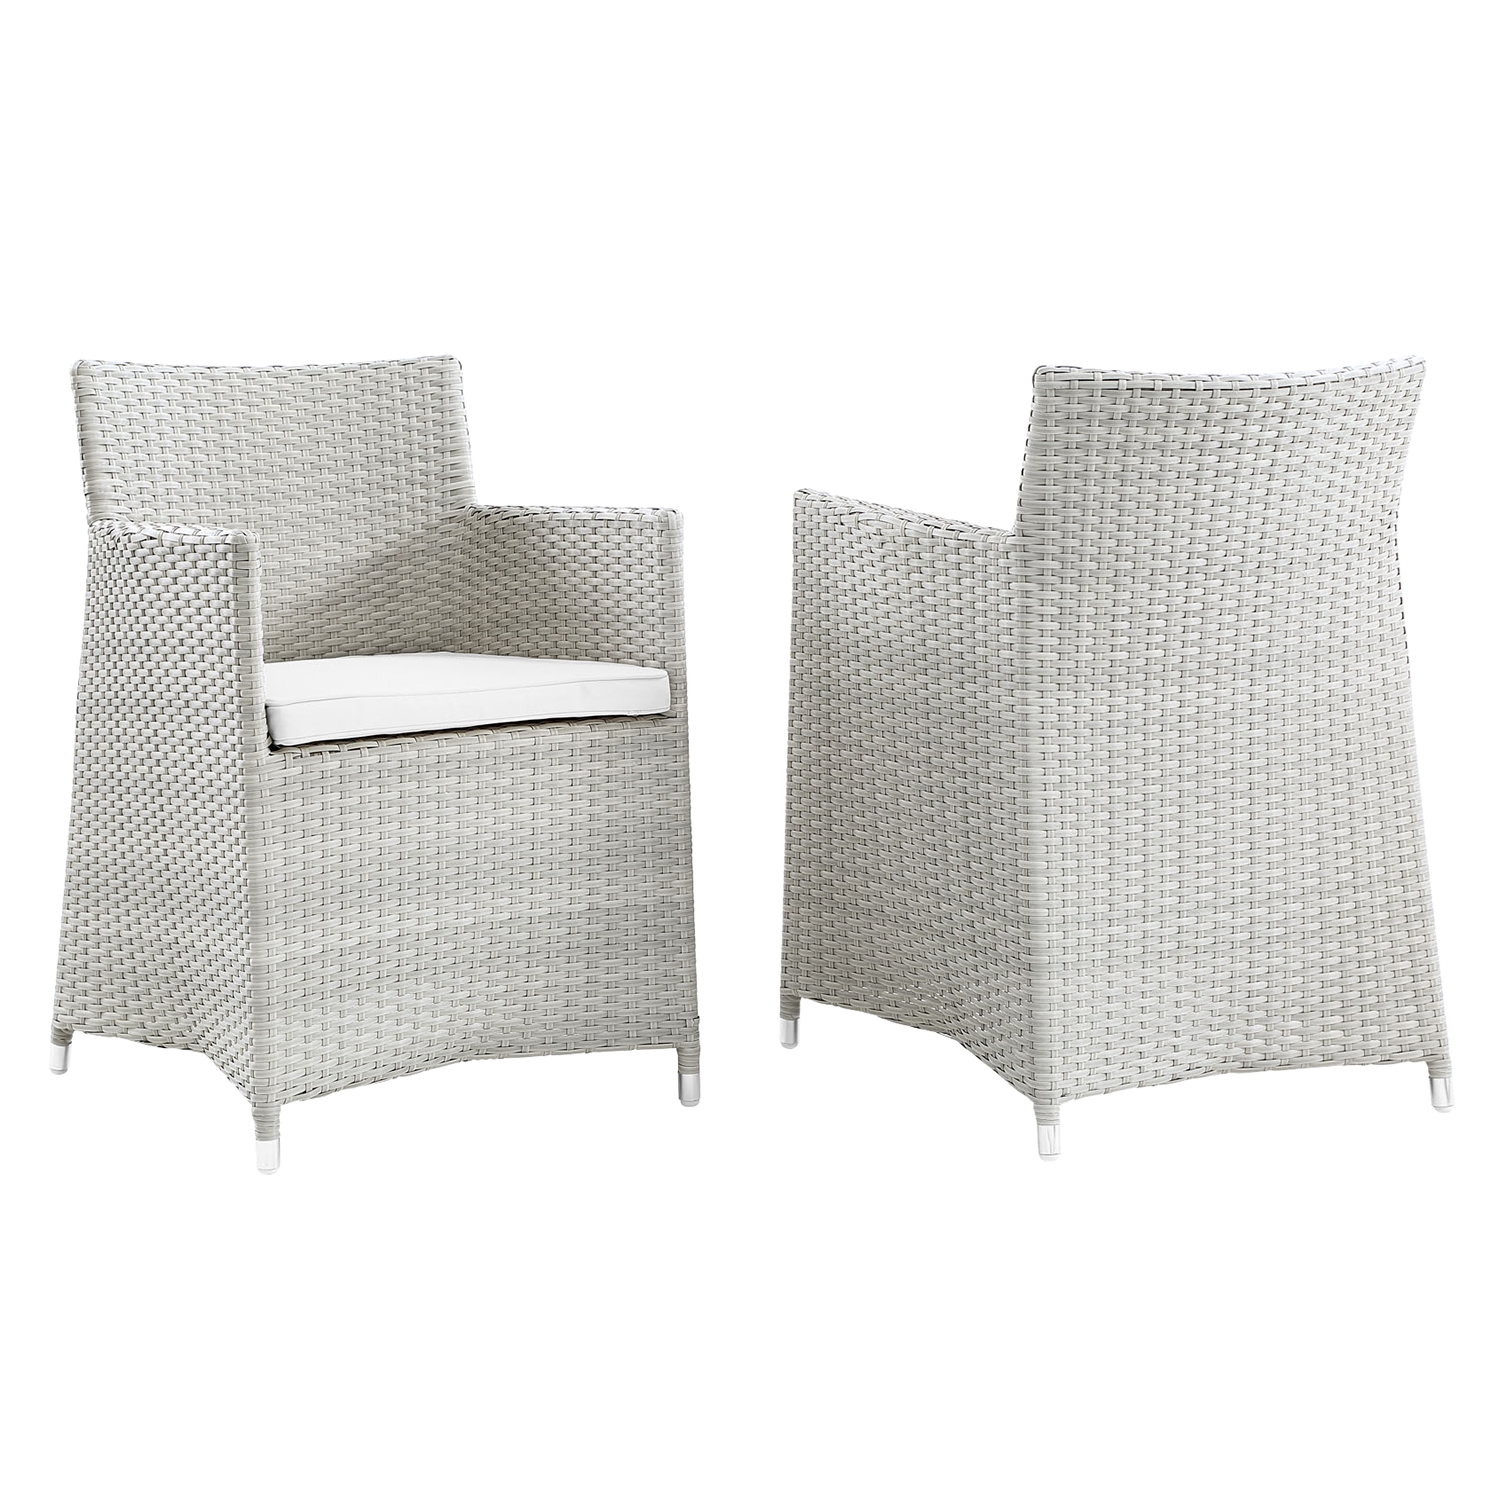 Junction Outdoor Patio Wicker Armchair - Gray Frame, White Cushion (Set of 2) - EEI-1738-GRY-WHI-SET